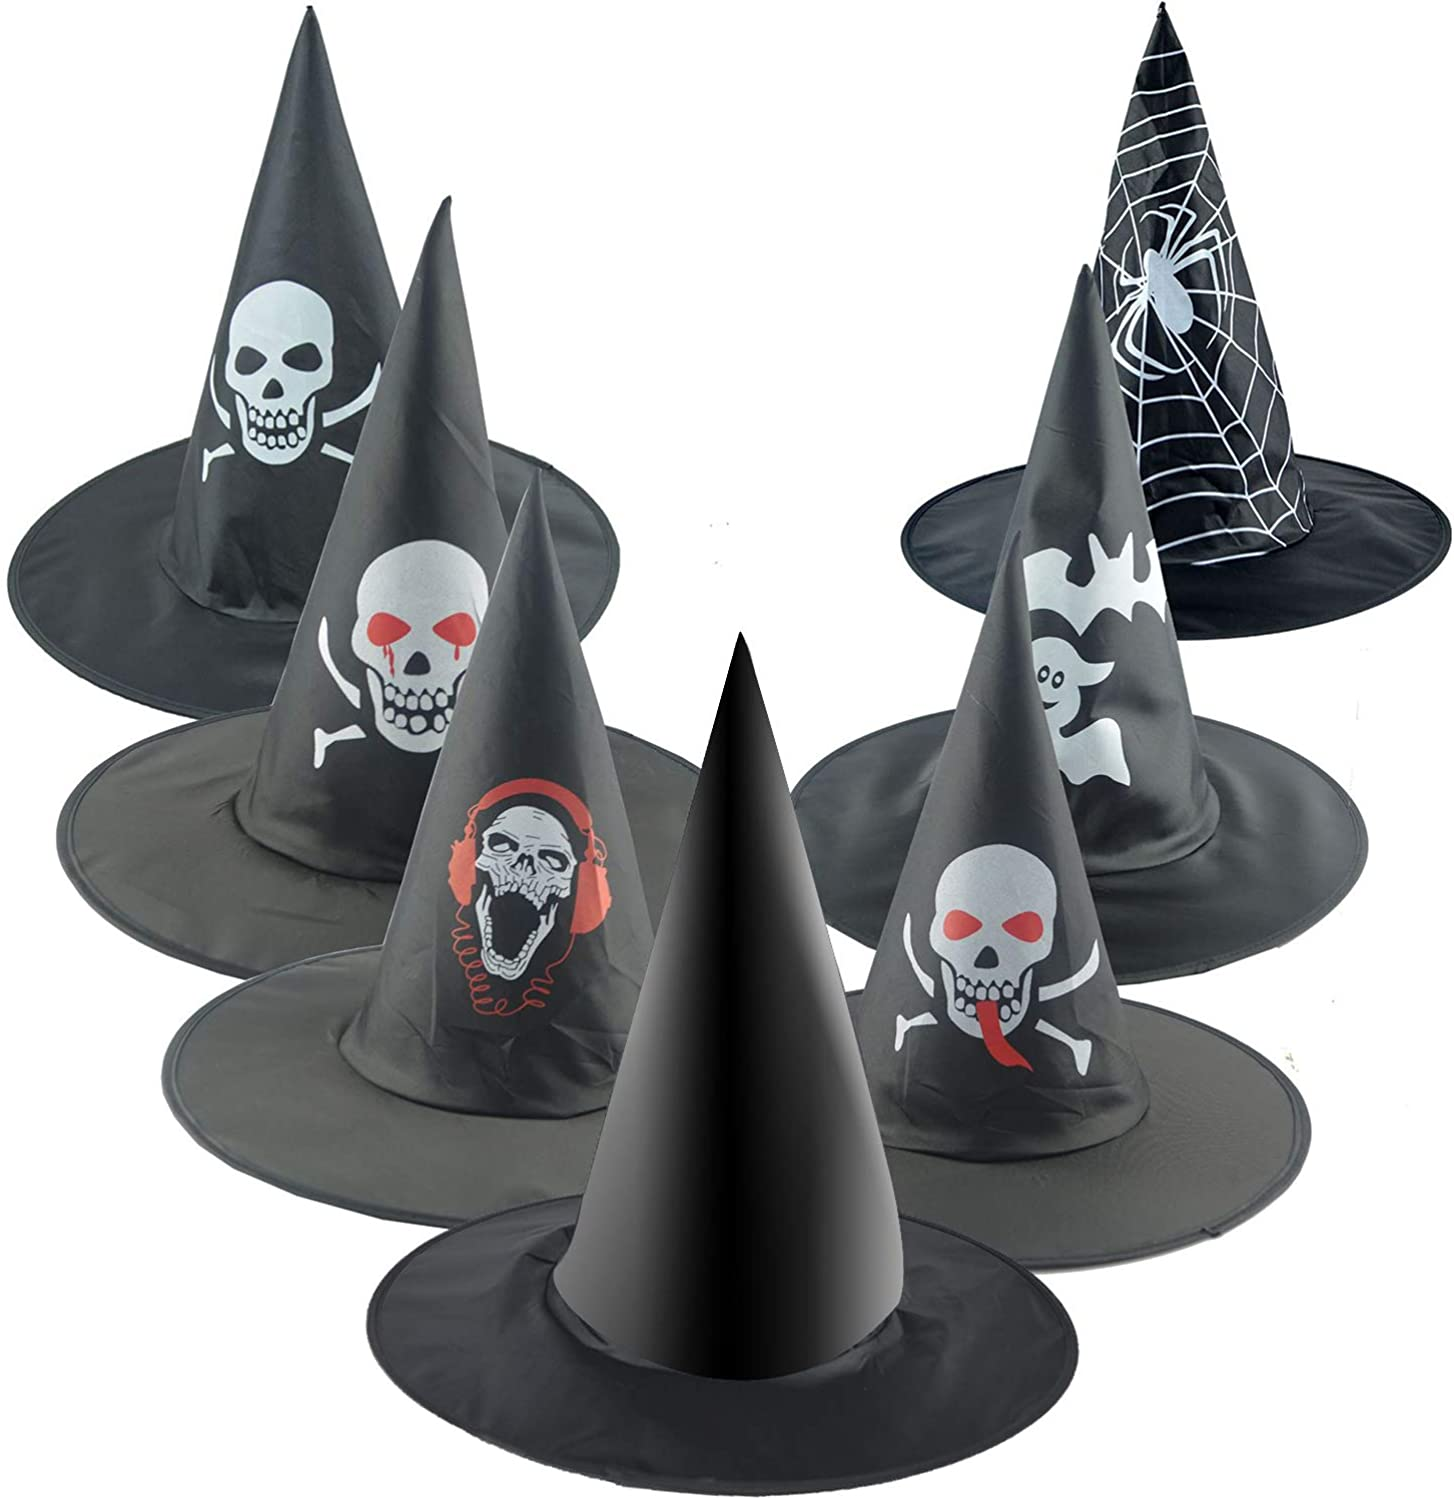 Bcpress 7 Styles Halloween Witch Hat Witch Hat Costume for Halloween Party Cosplay Decoration Black